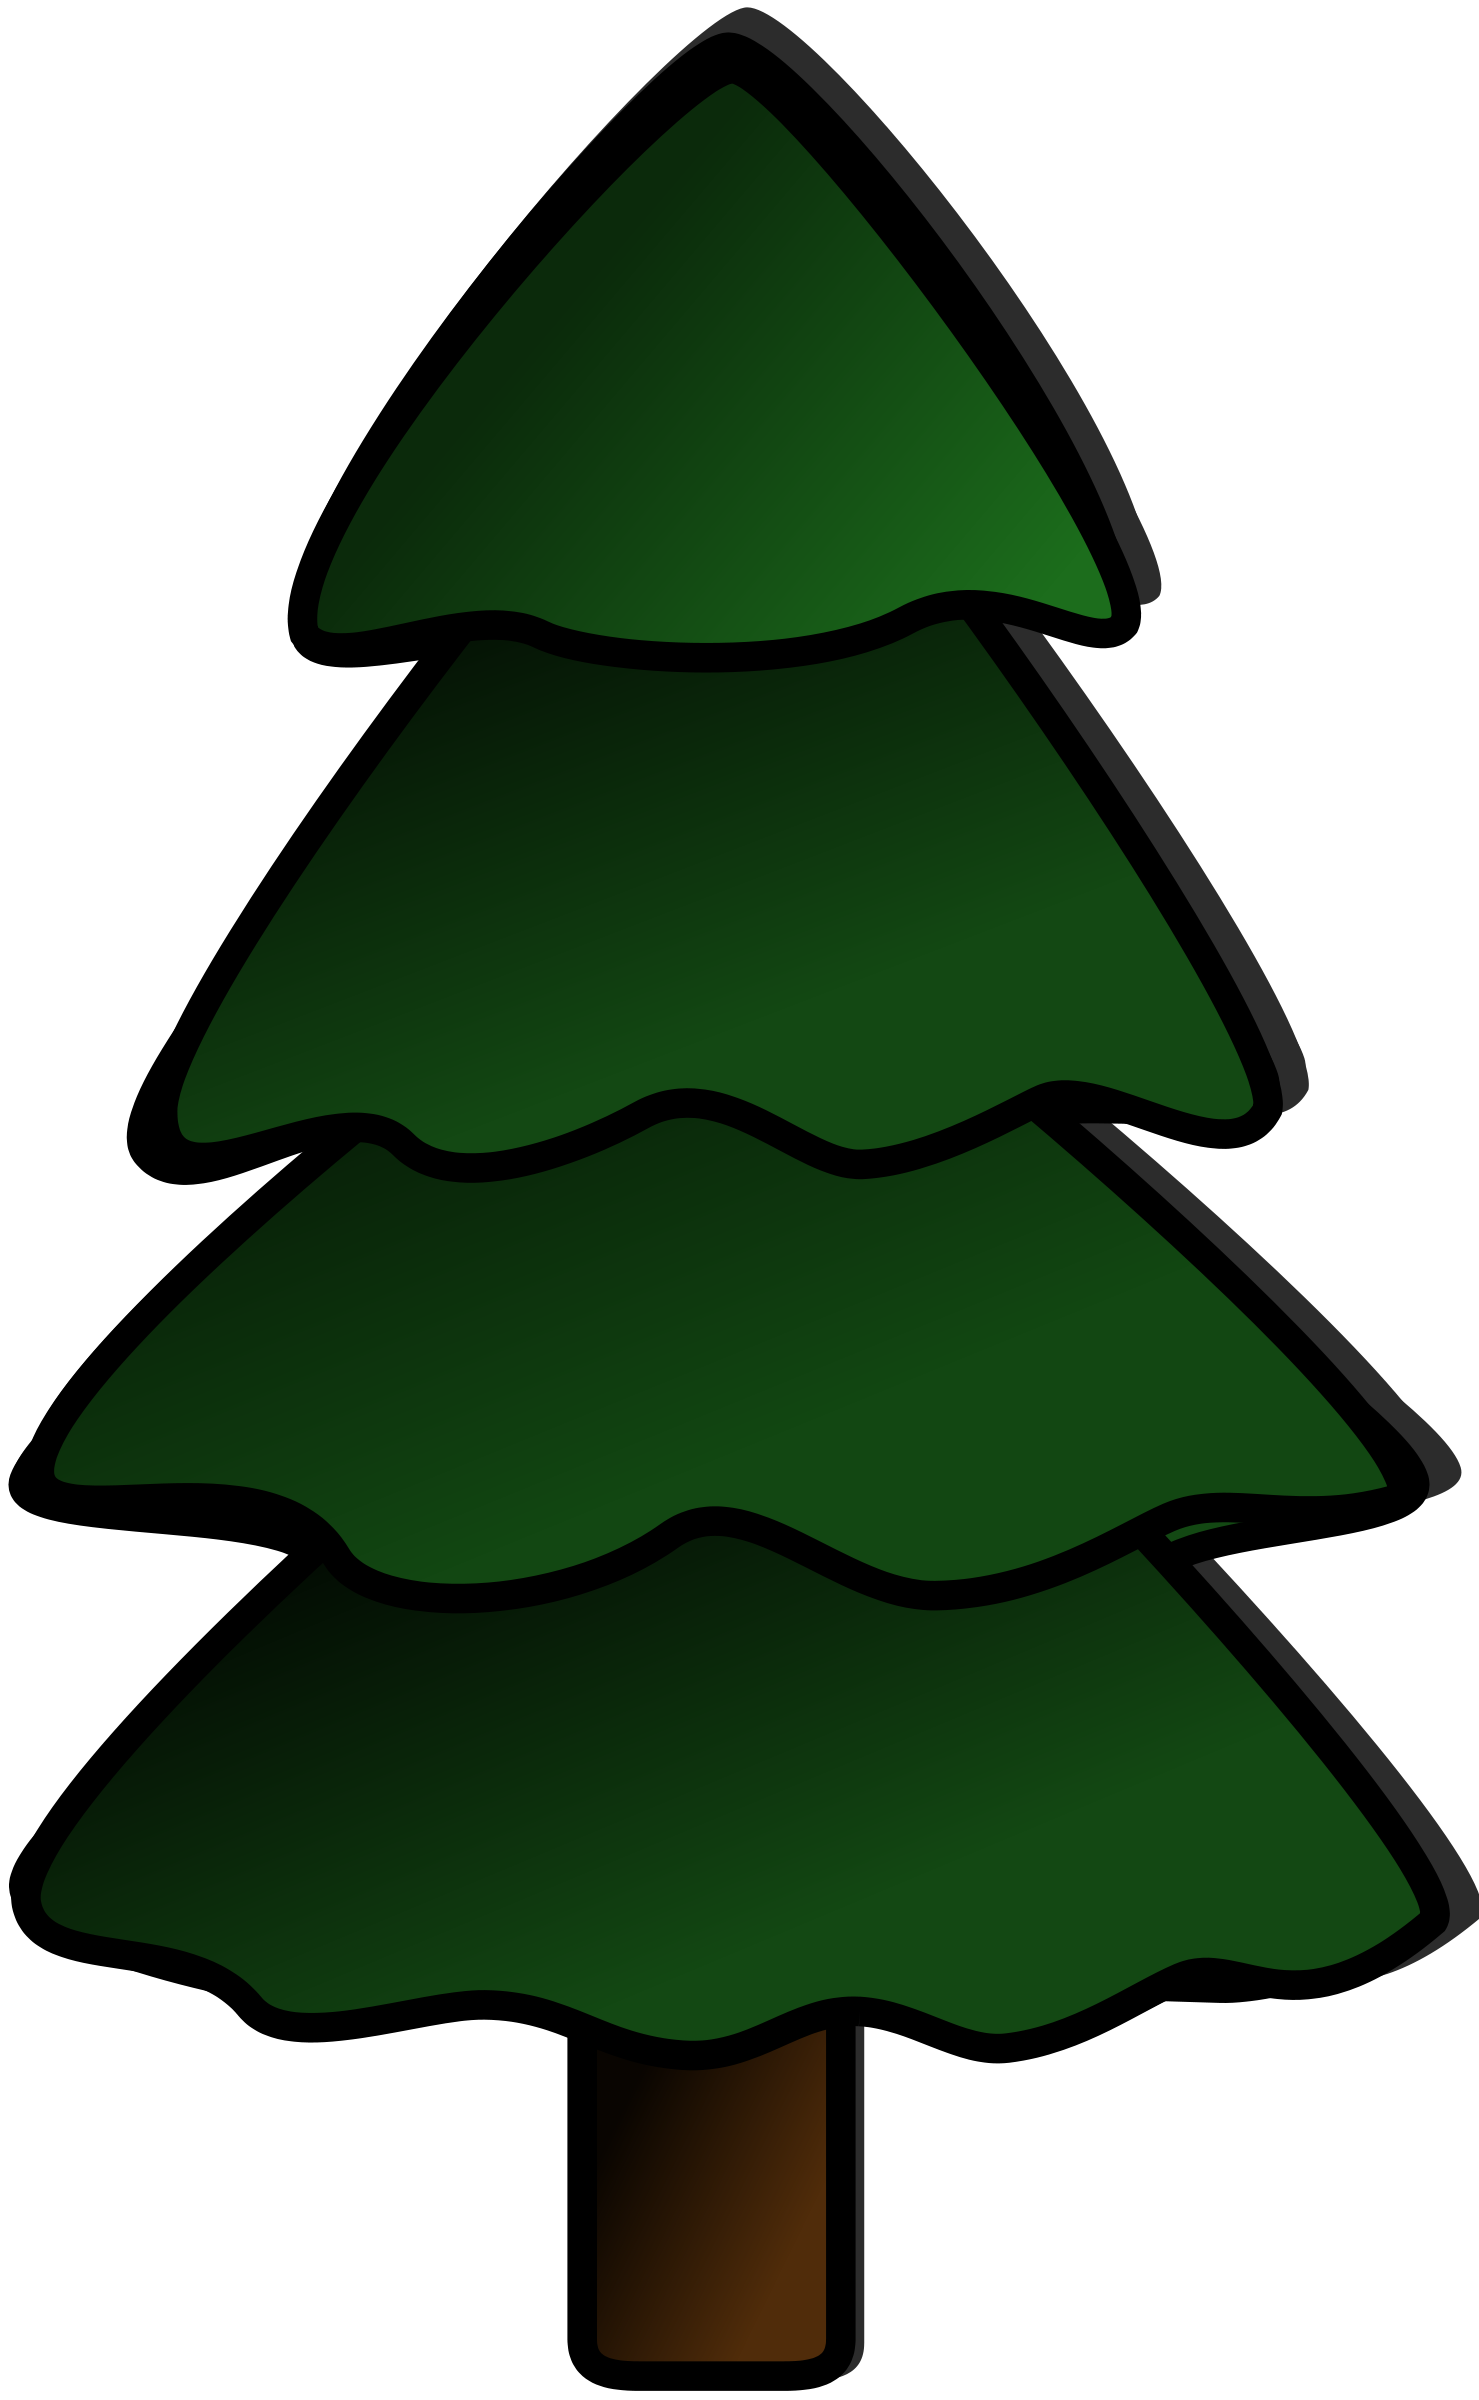 Clip art pine tree clipart free clipart images.